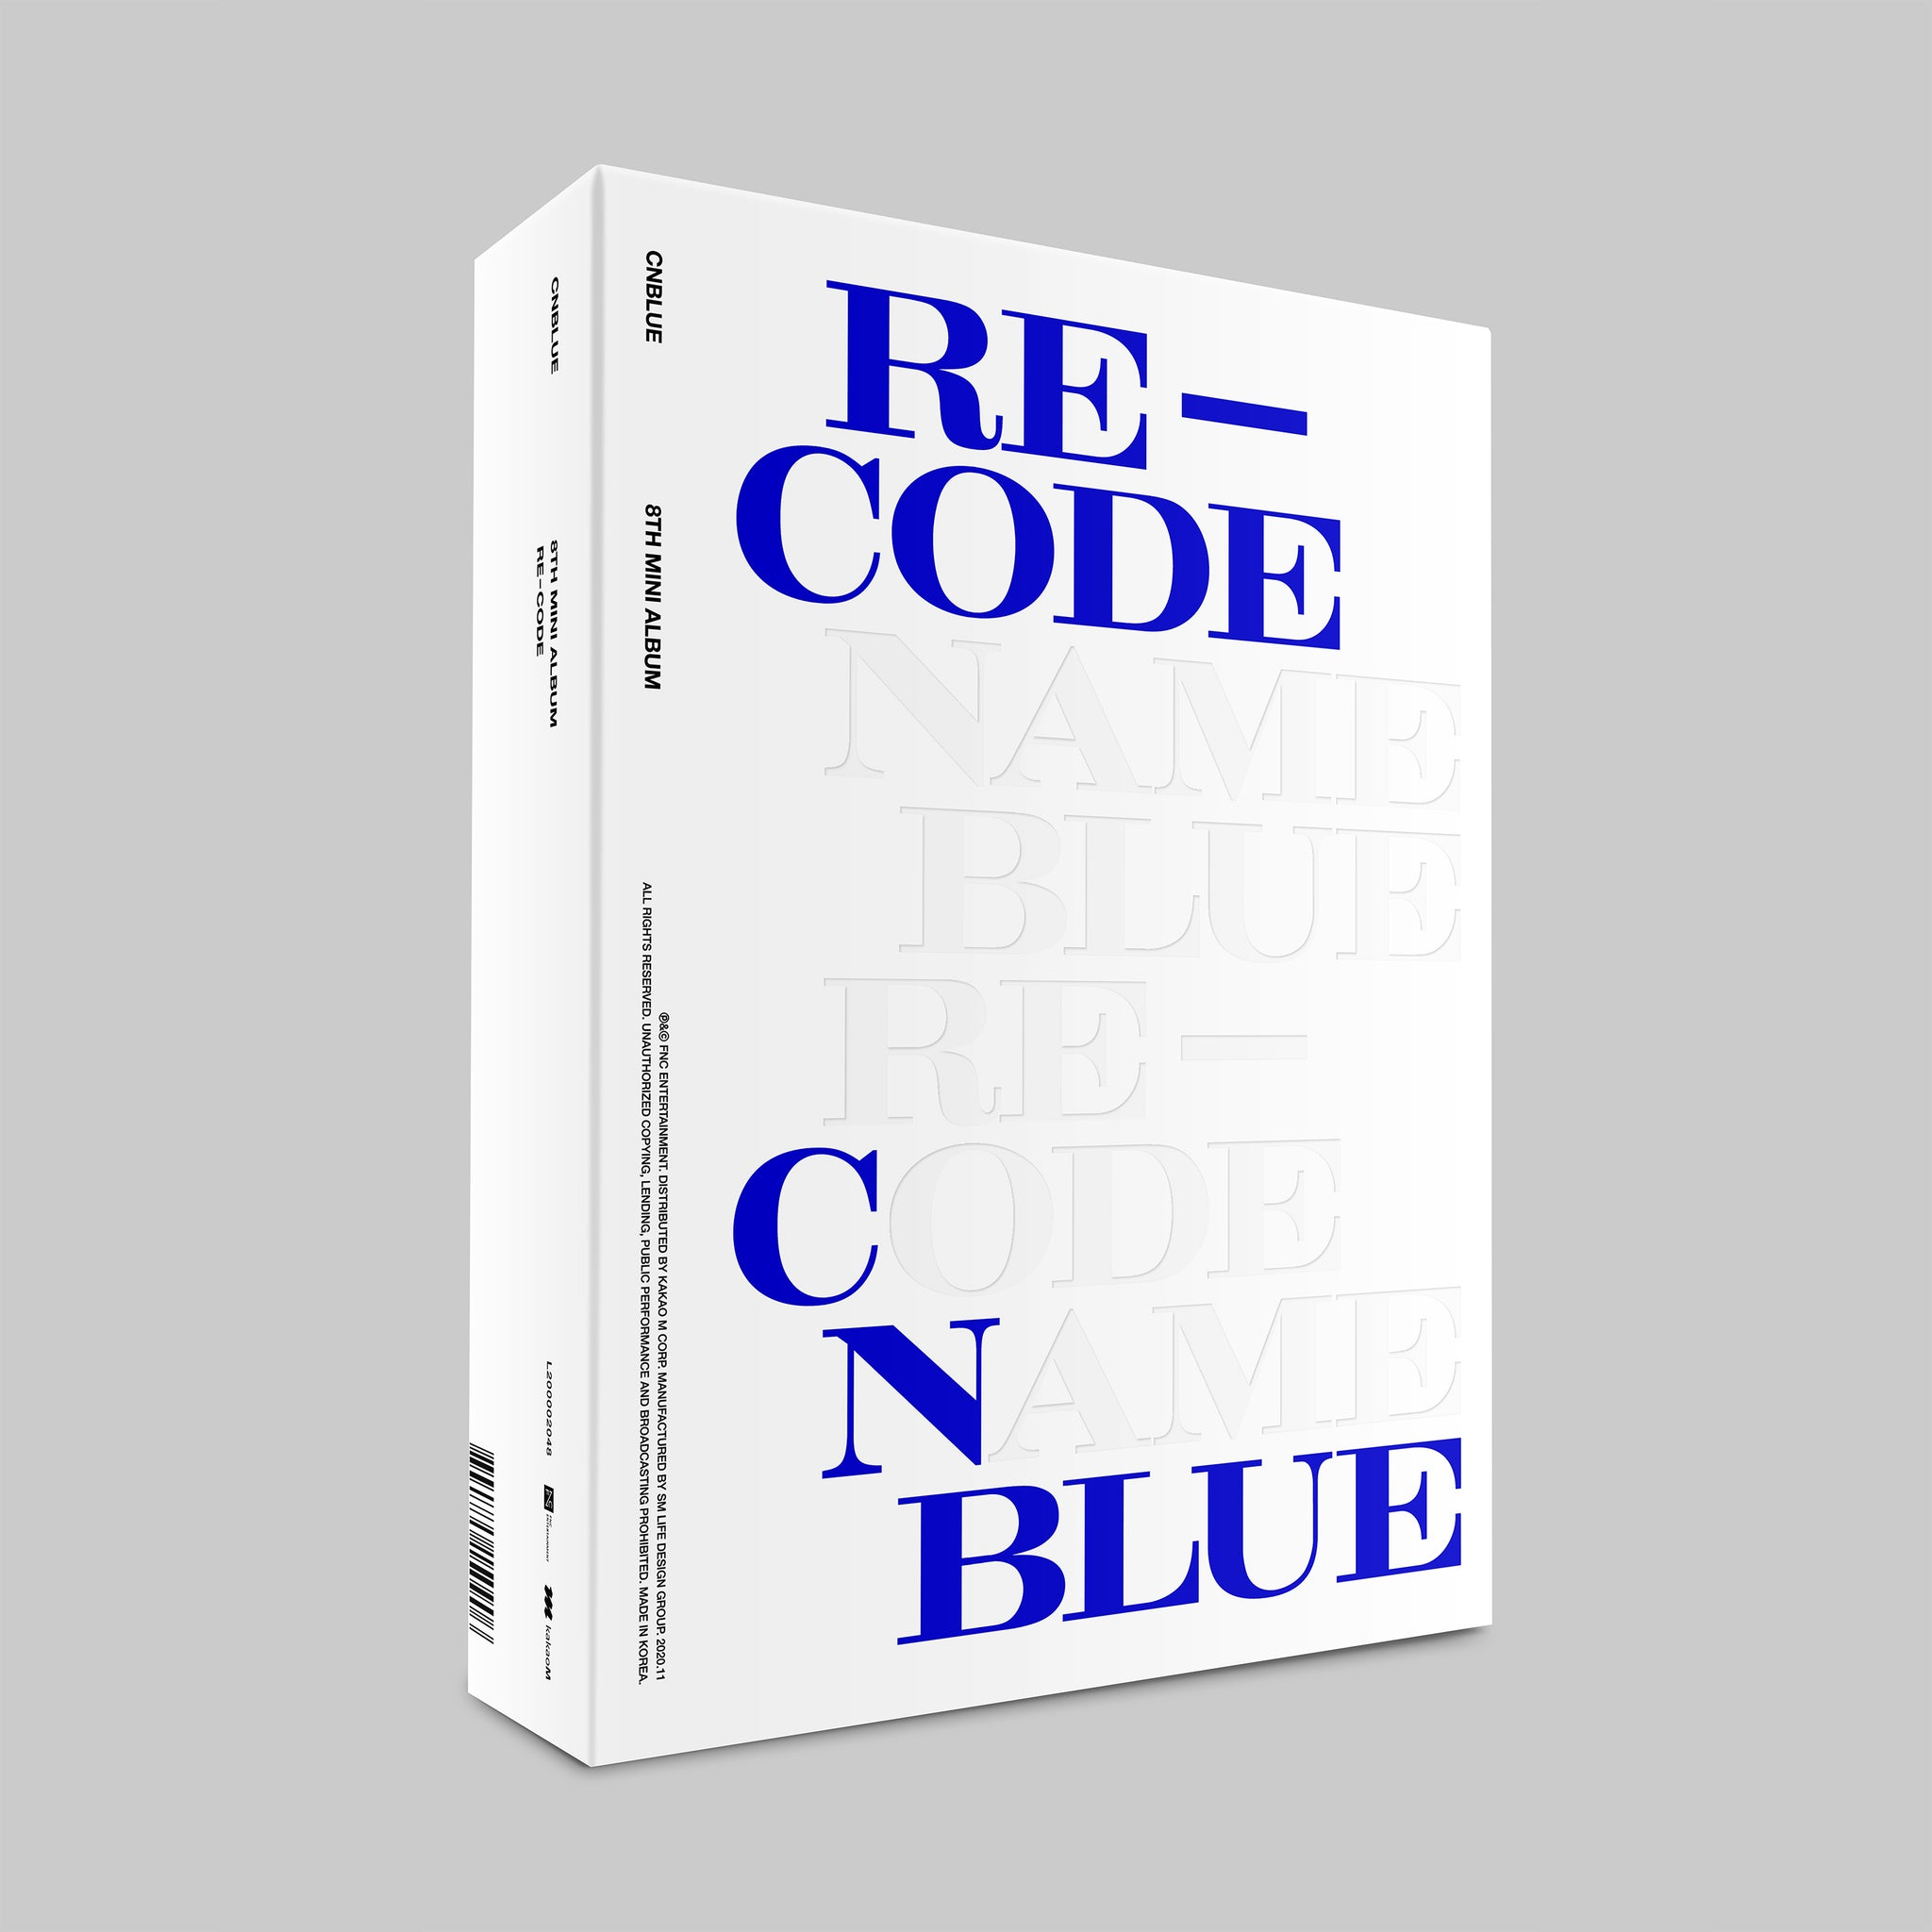 CNBLUE 8TH MINI ALBUM 'RE-CODE' + POSTER